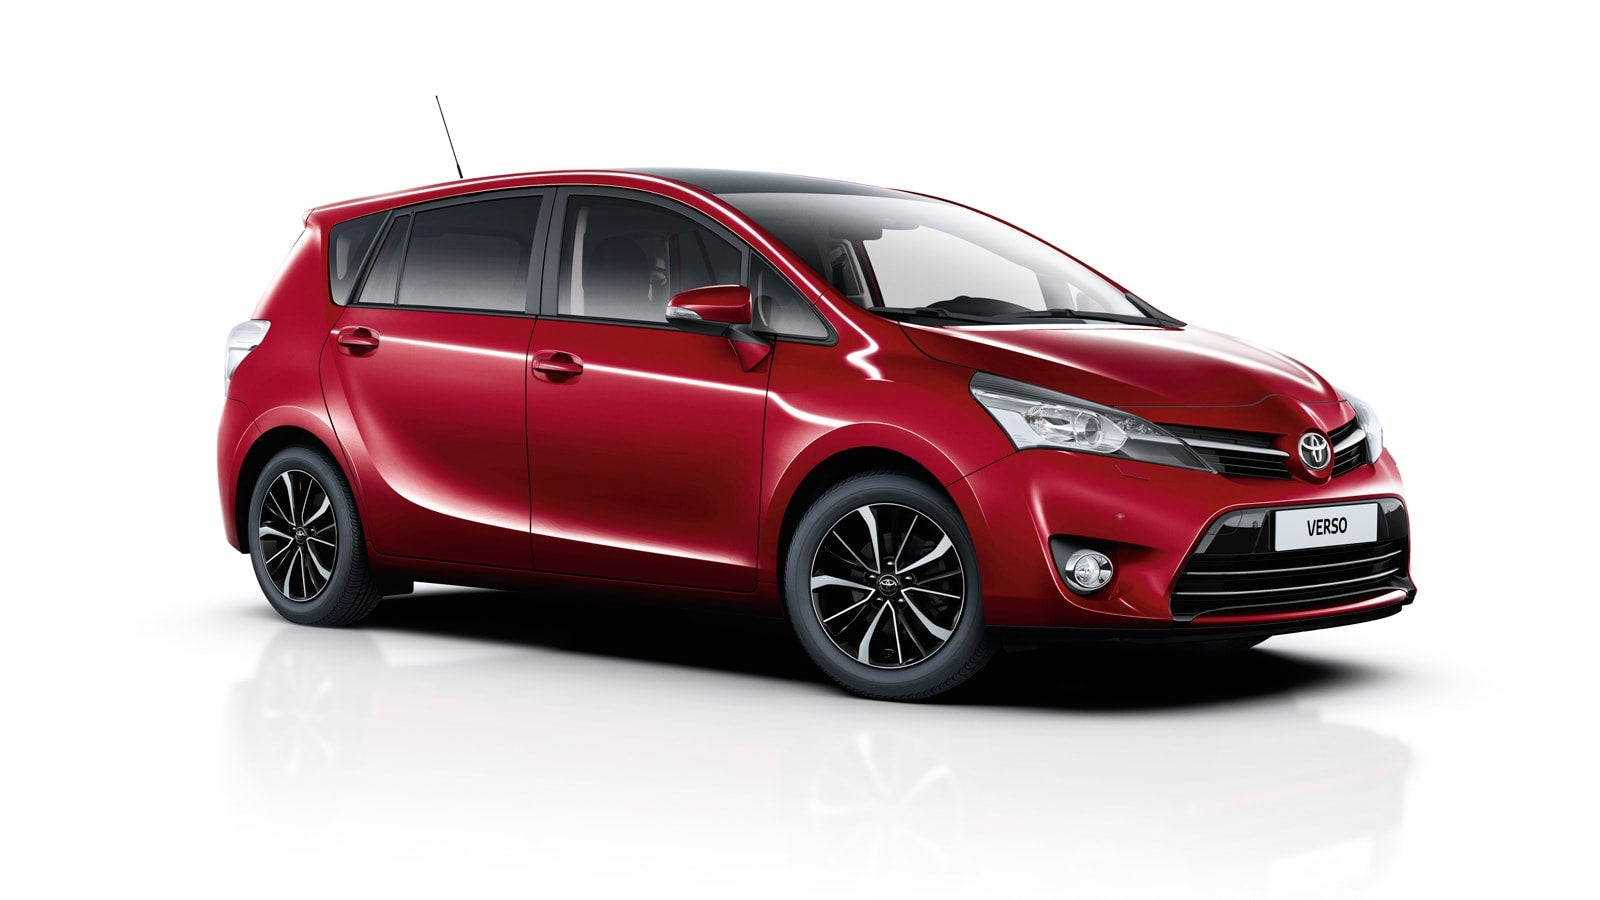 Toyota Verso: frontal